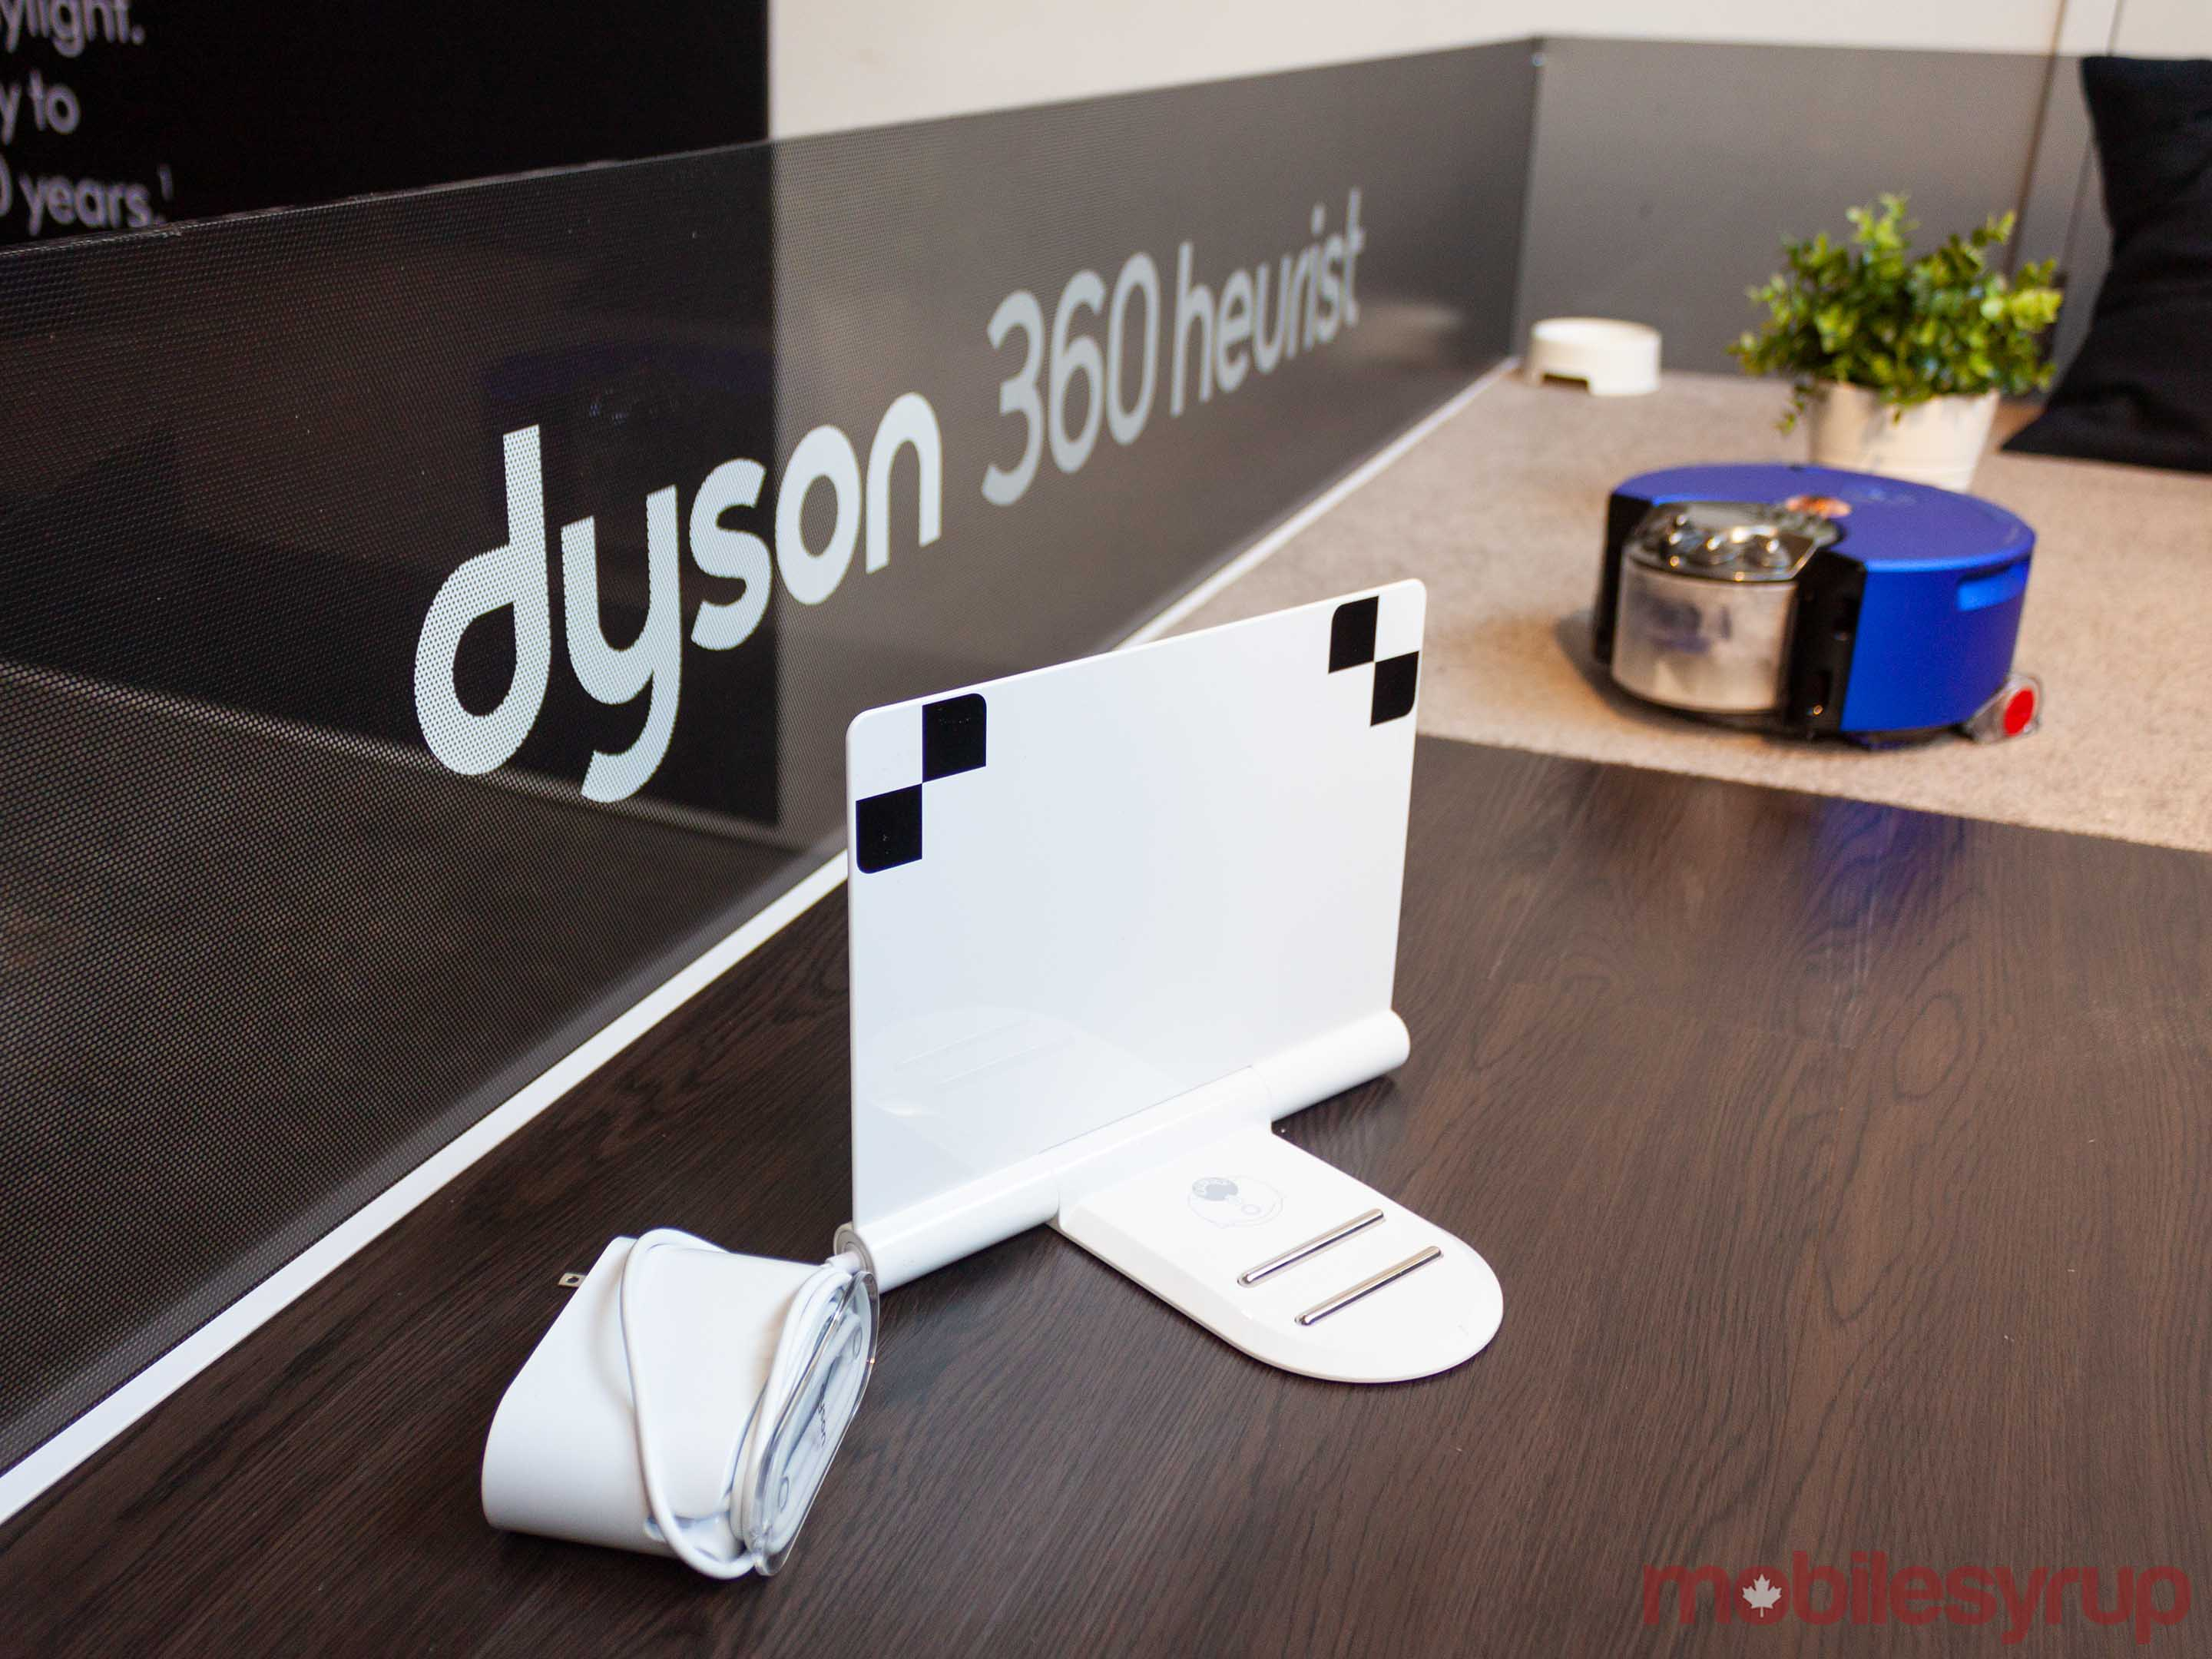 Dyson 360 Heurist charging pad